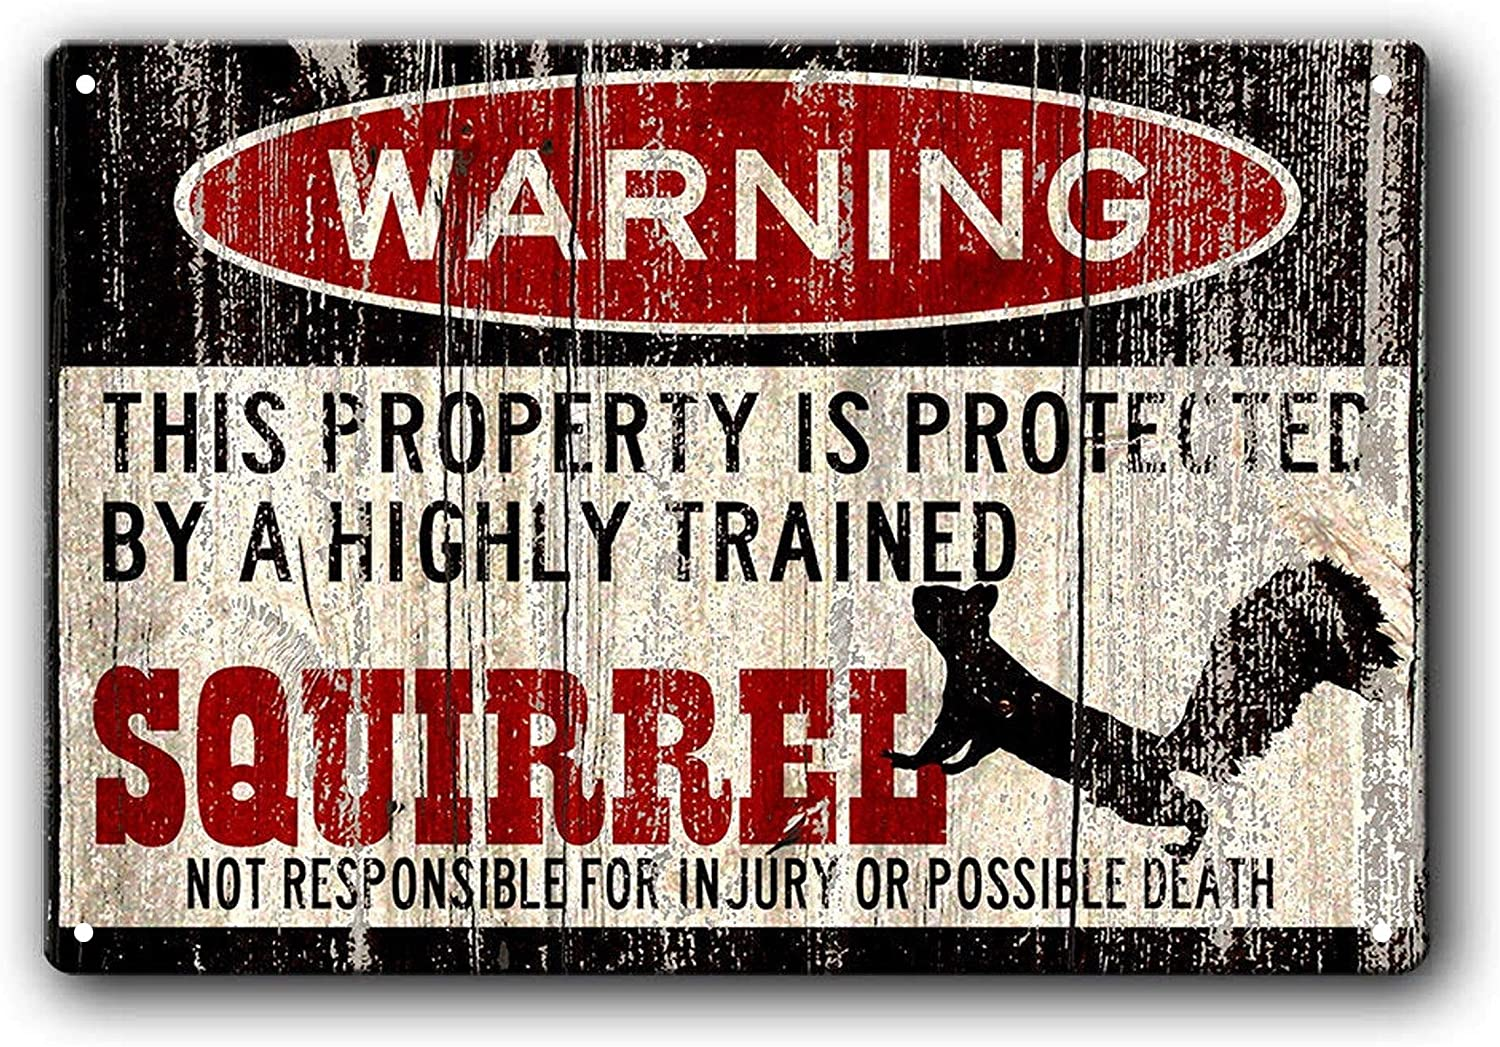 Vintage Metal Sign Warning This Property is Protected by a Highly Trained Squirrel Outdoor Home Yard Street Garden Garage Door Metal Signs 12x8inch